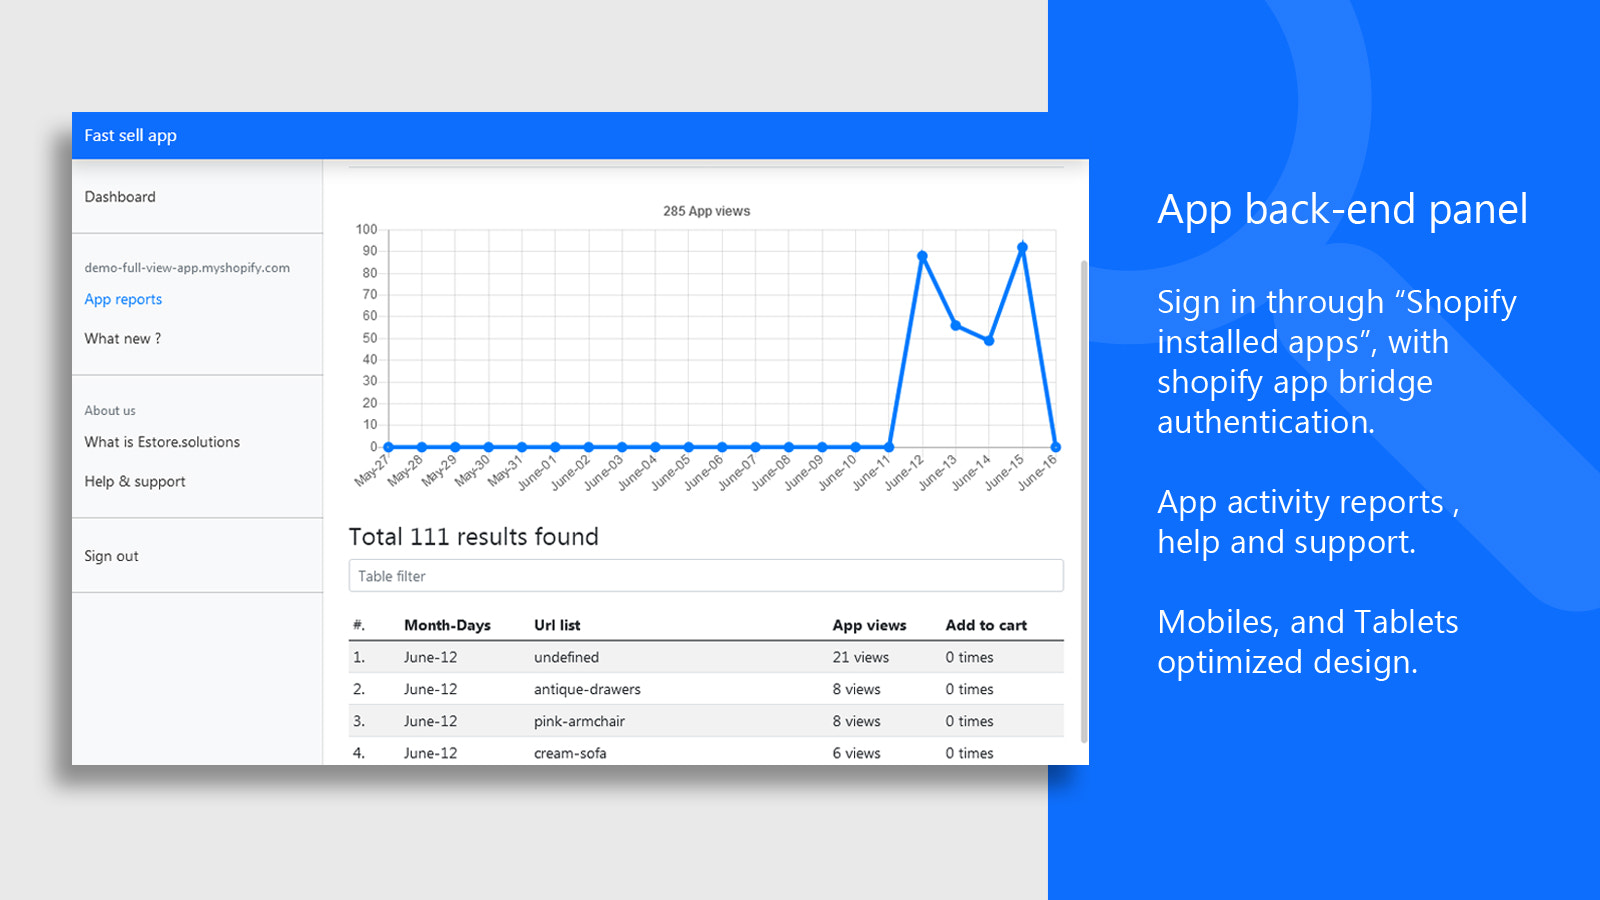 fast sell app back-end panel